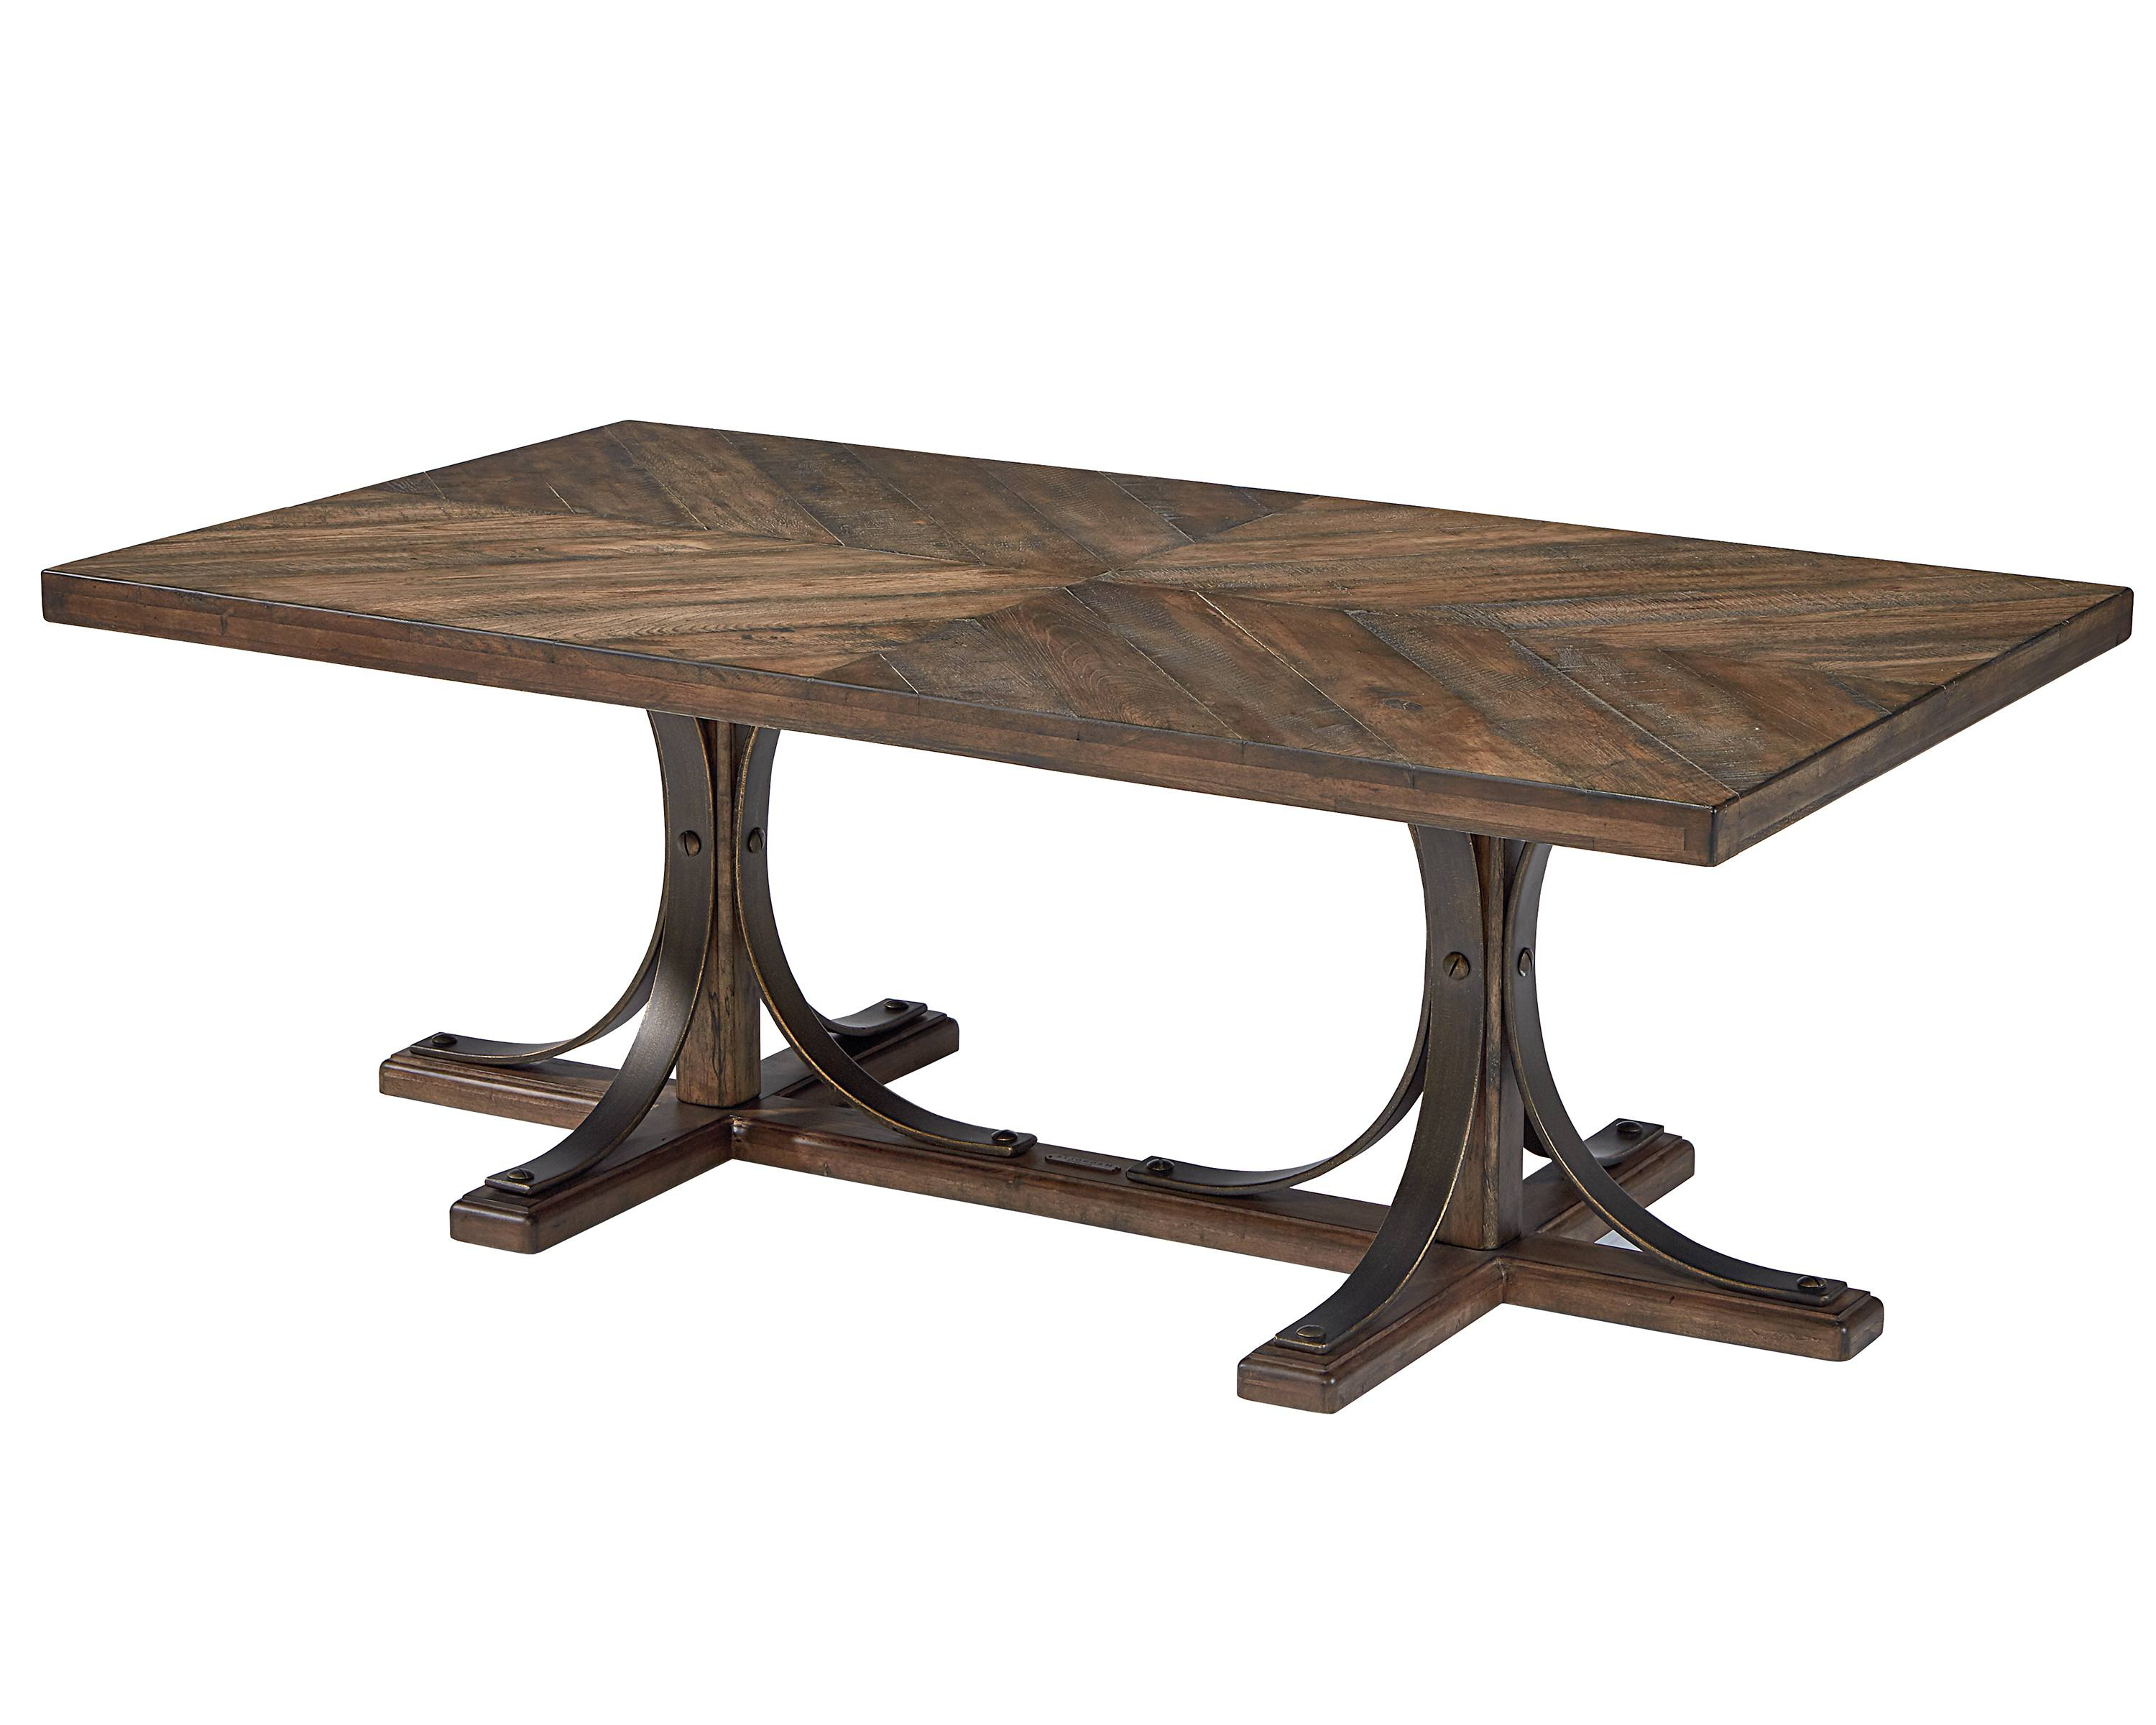 Famous Magnolia Home Iron Trestle Cocktail Tables Within Iron Trestle Coffee Table – Magnolia Home (Gallery 1 of 20)